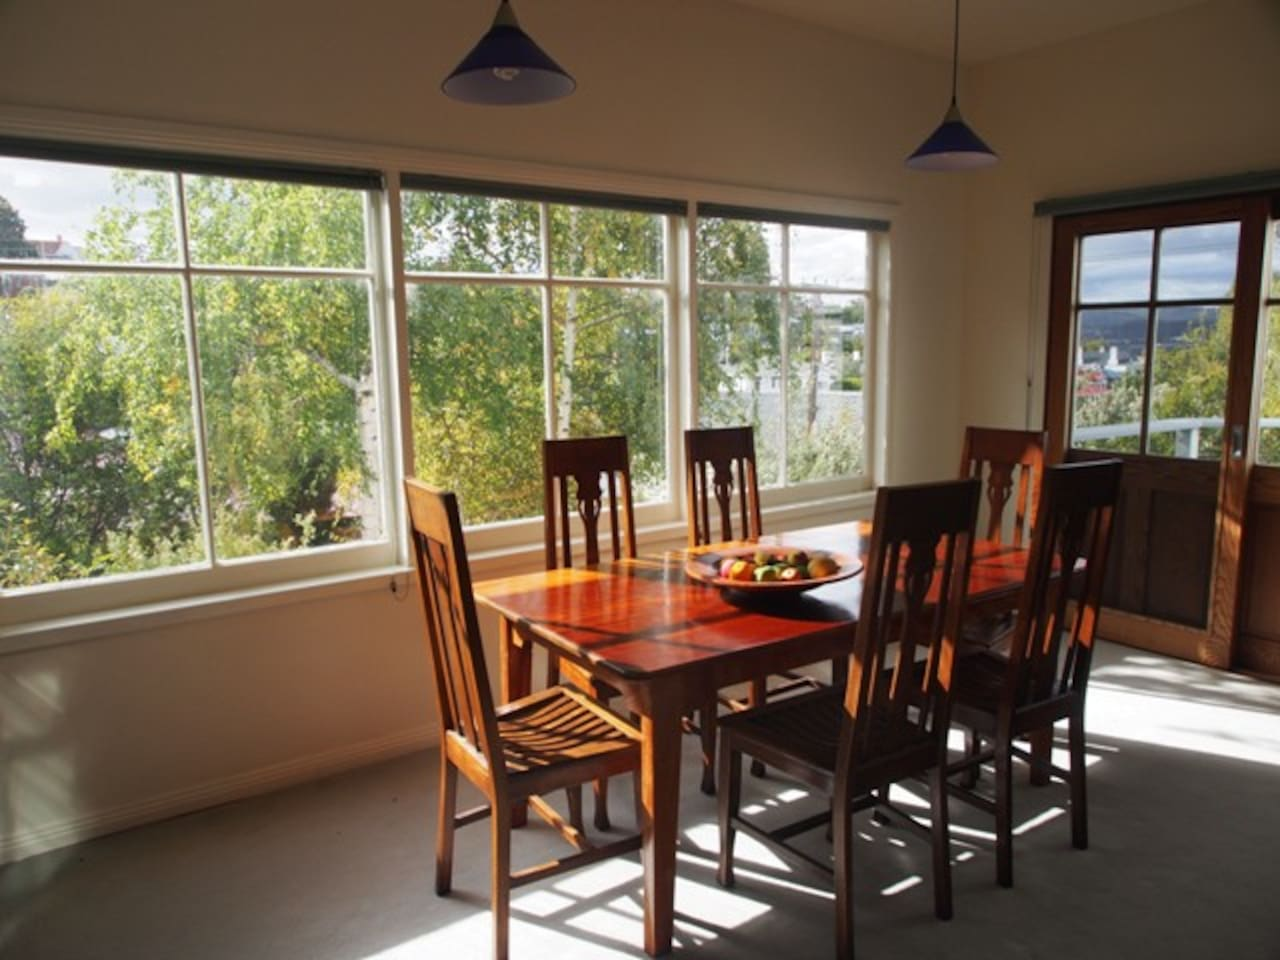 Our Airbnb has a large sunny lounge and dining room with a view over the garden and city